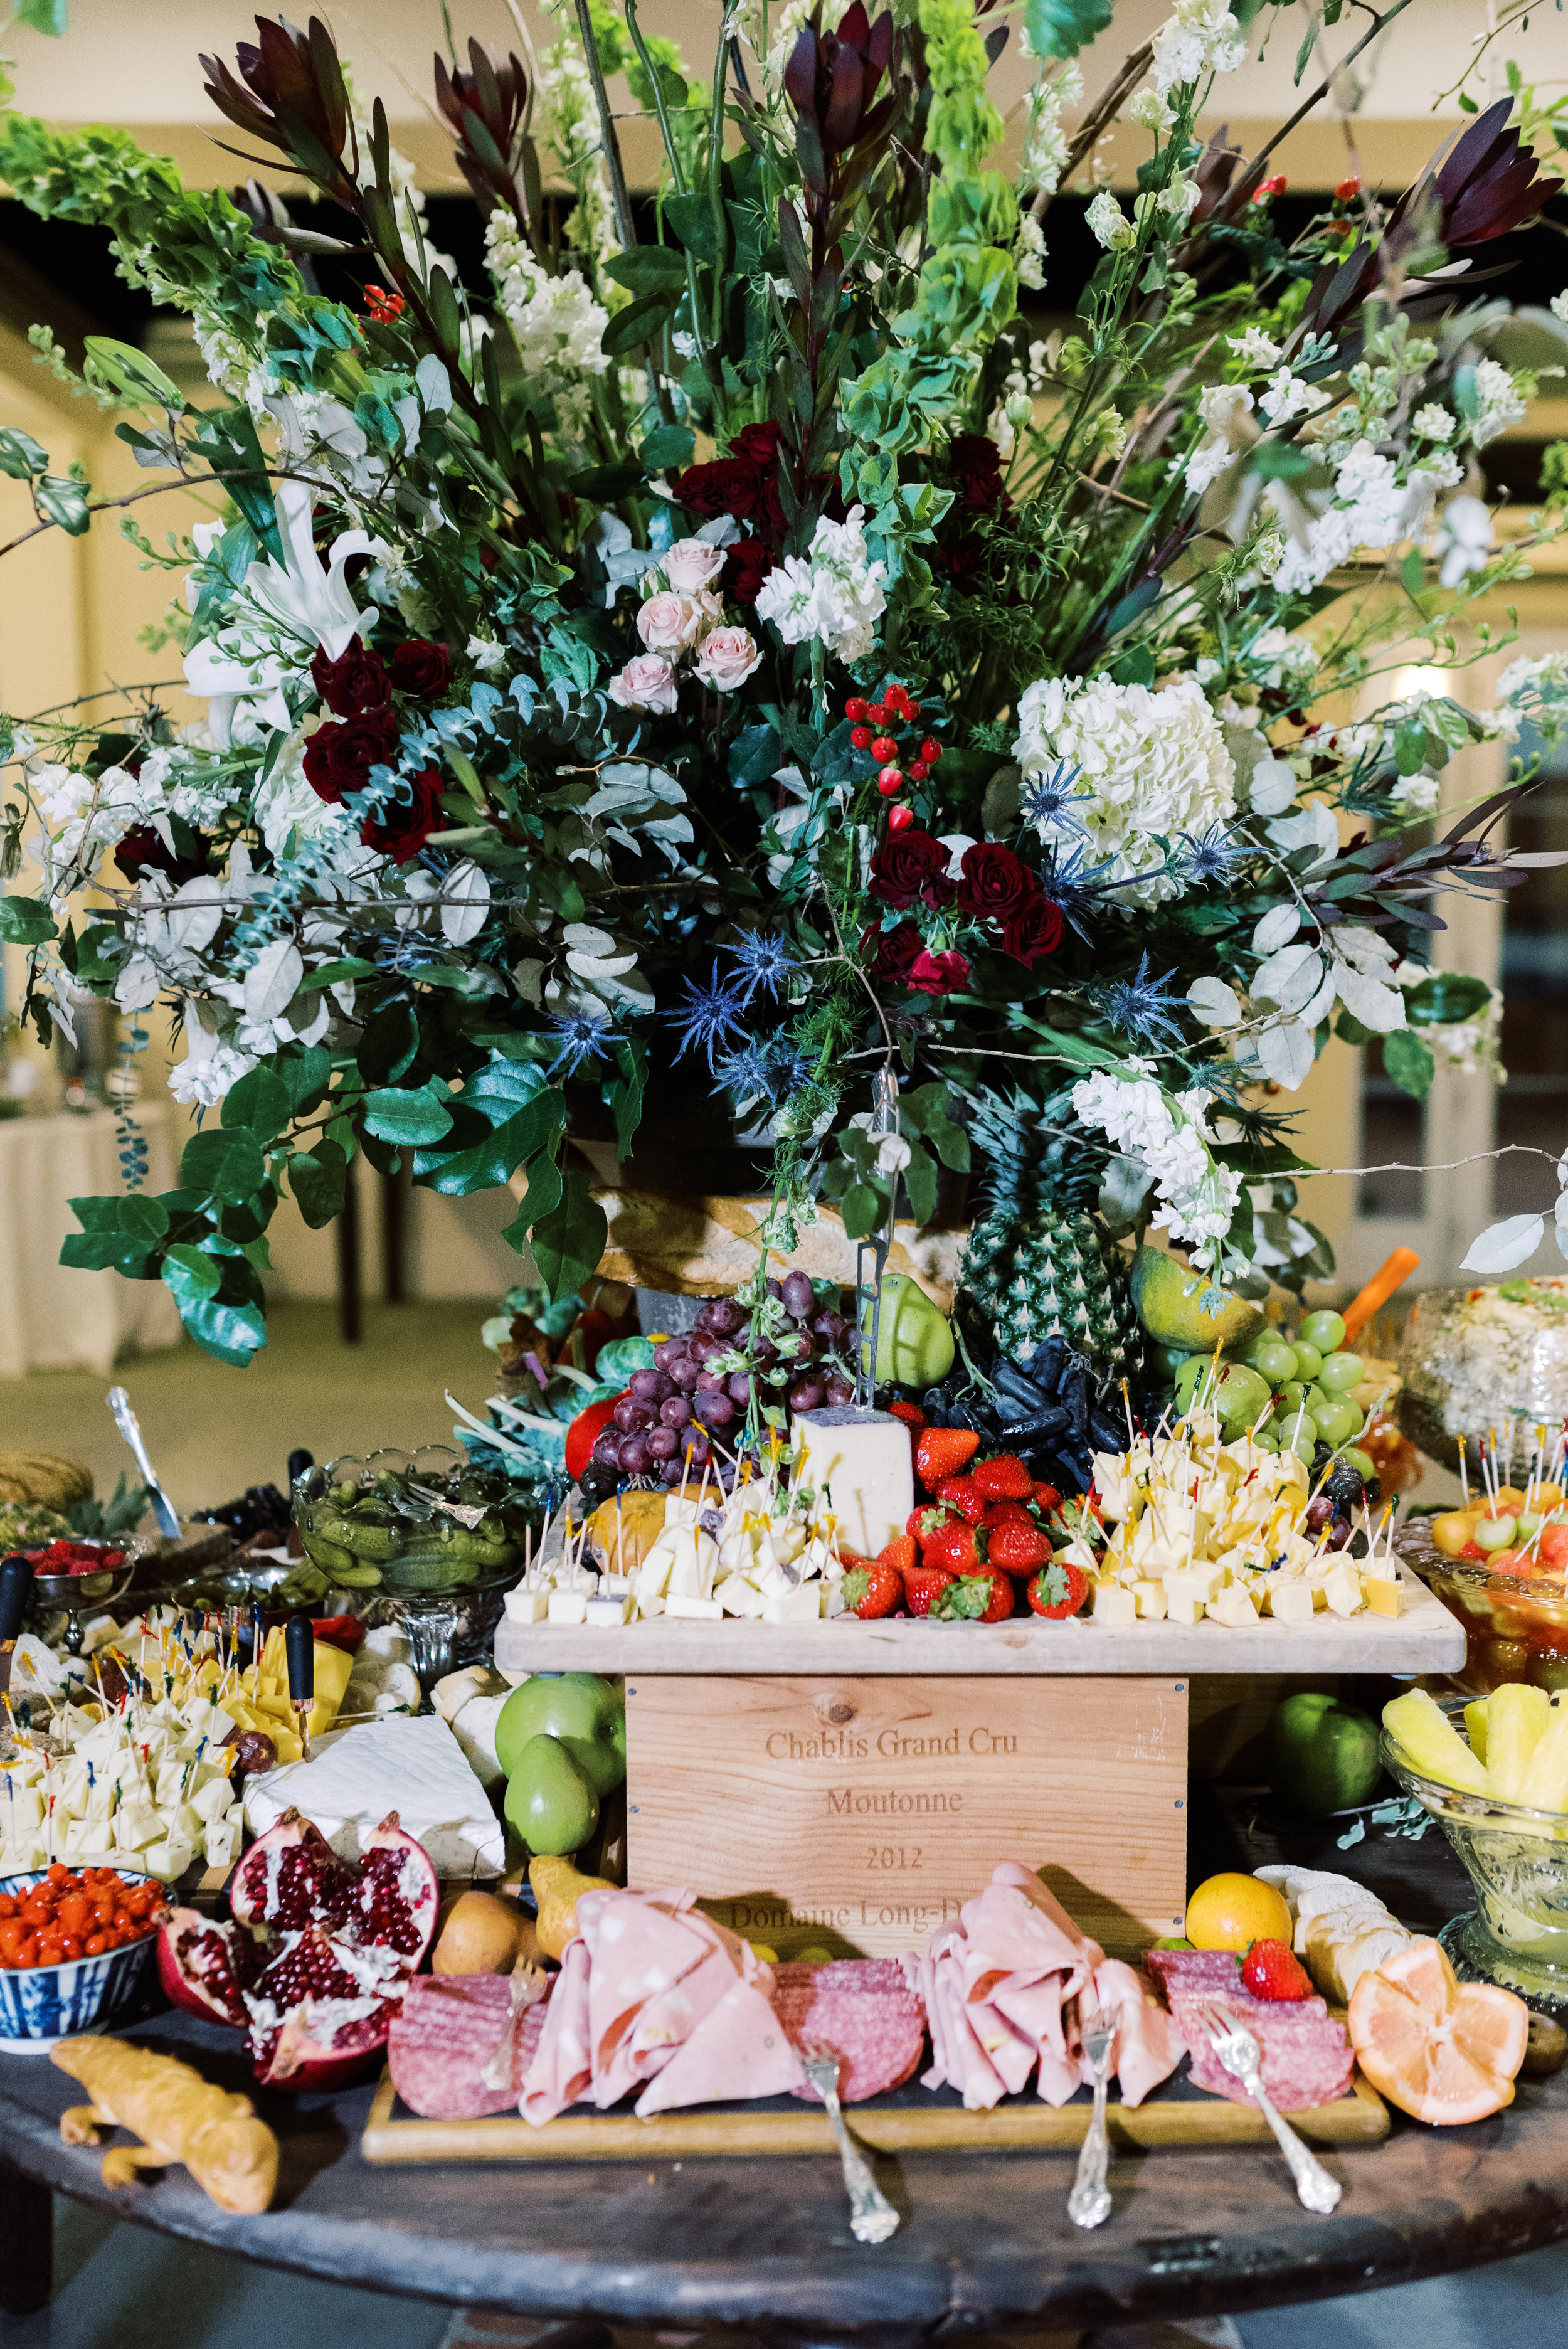 Southern Fete, Southern Wedding, Peregrin's Florist, Marcello's, Sam Trahan Catering